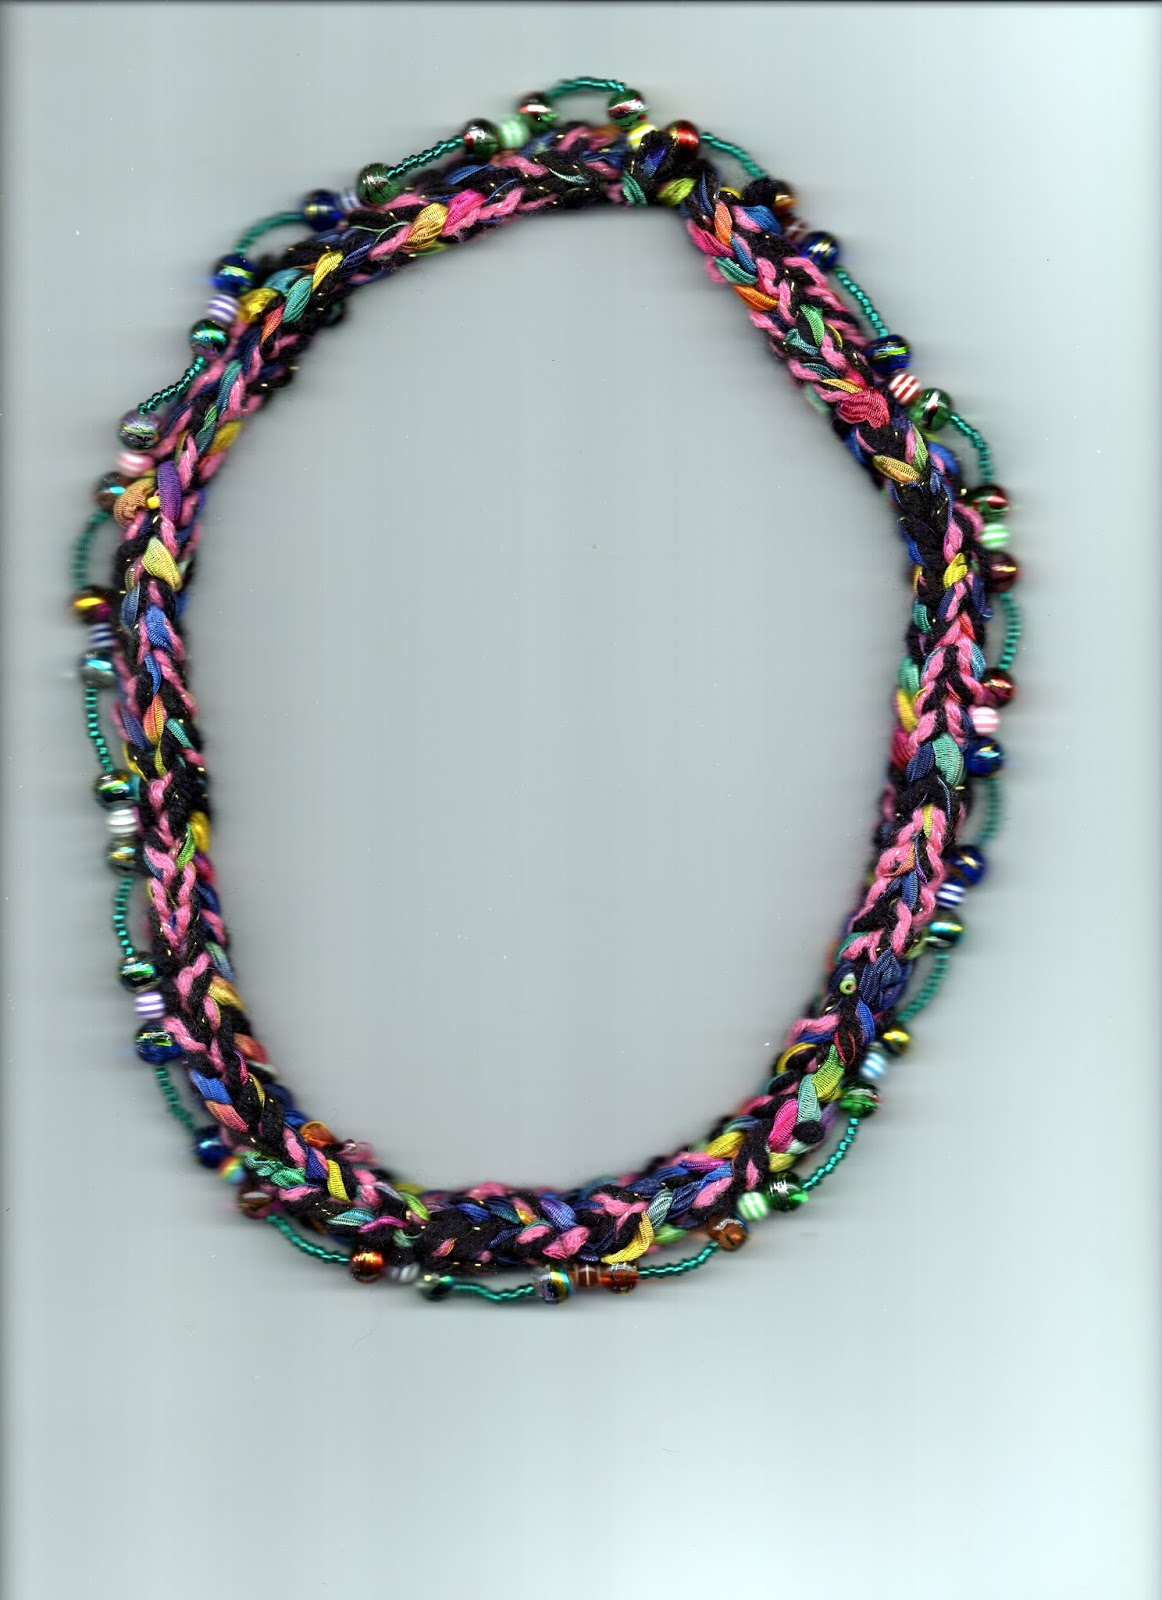 French Knitting With Beads : Autumn gal today is my french knitter beaded necklace